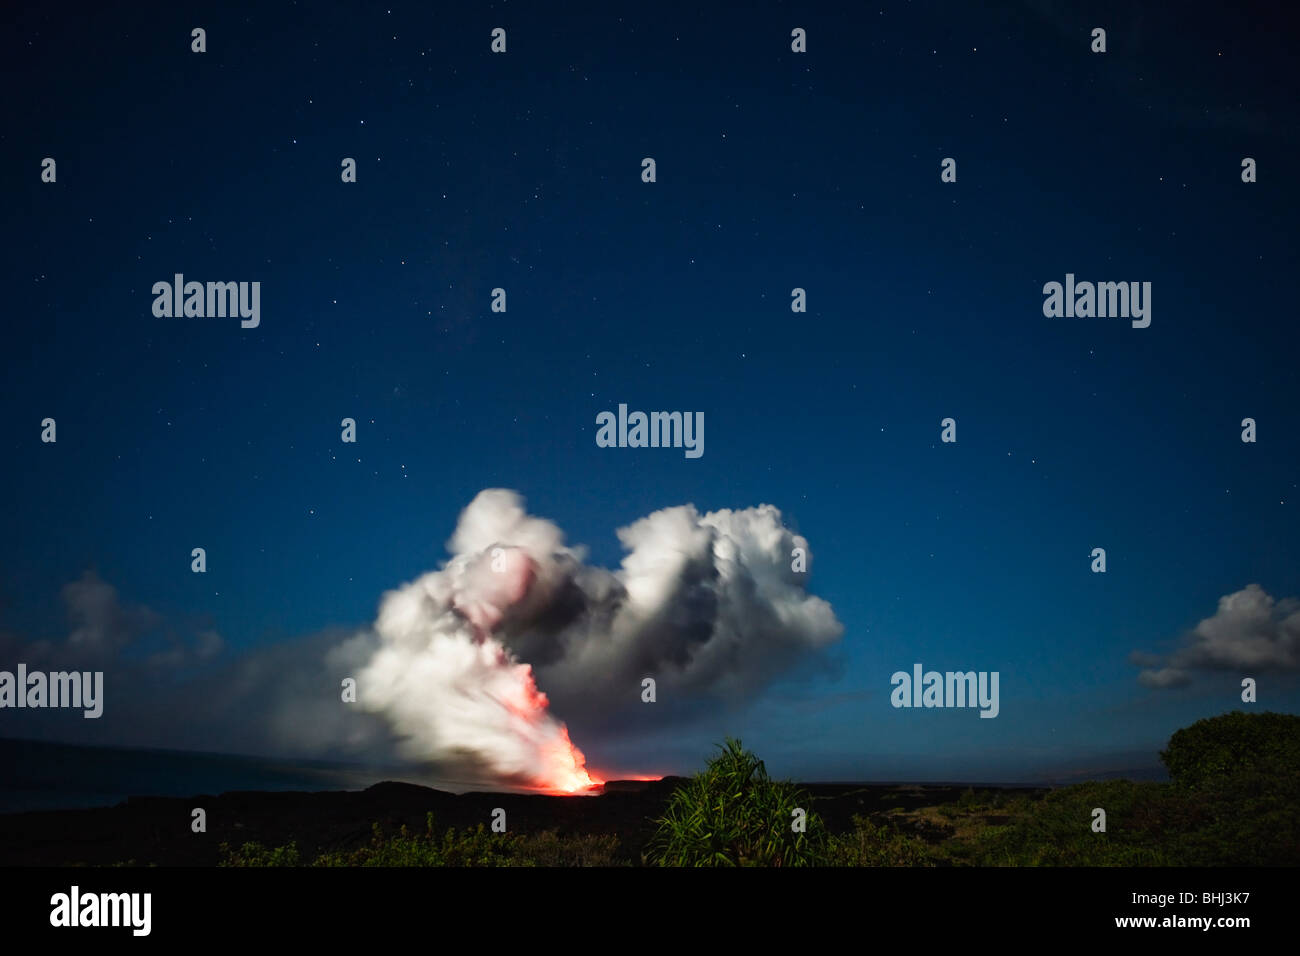 Ash and steam cloud from volcanic flow - Stock Image